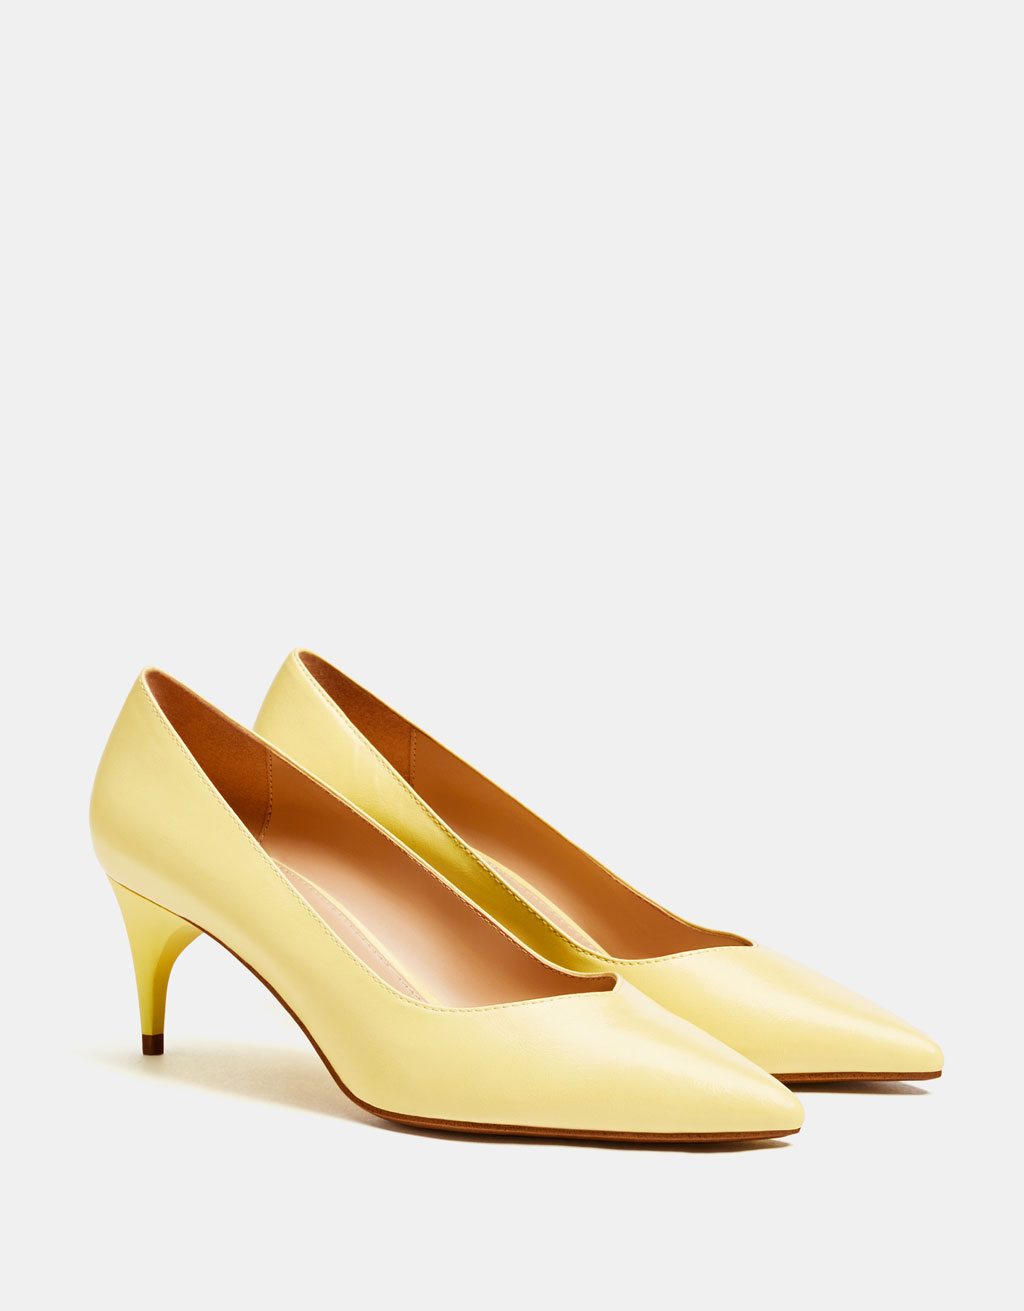 Yellow mid-heel shoes